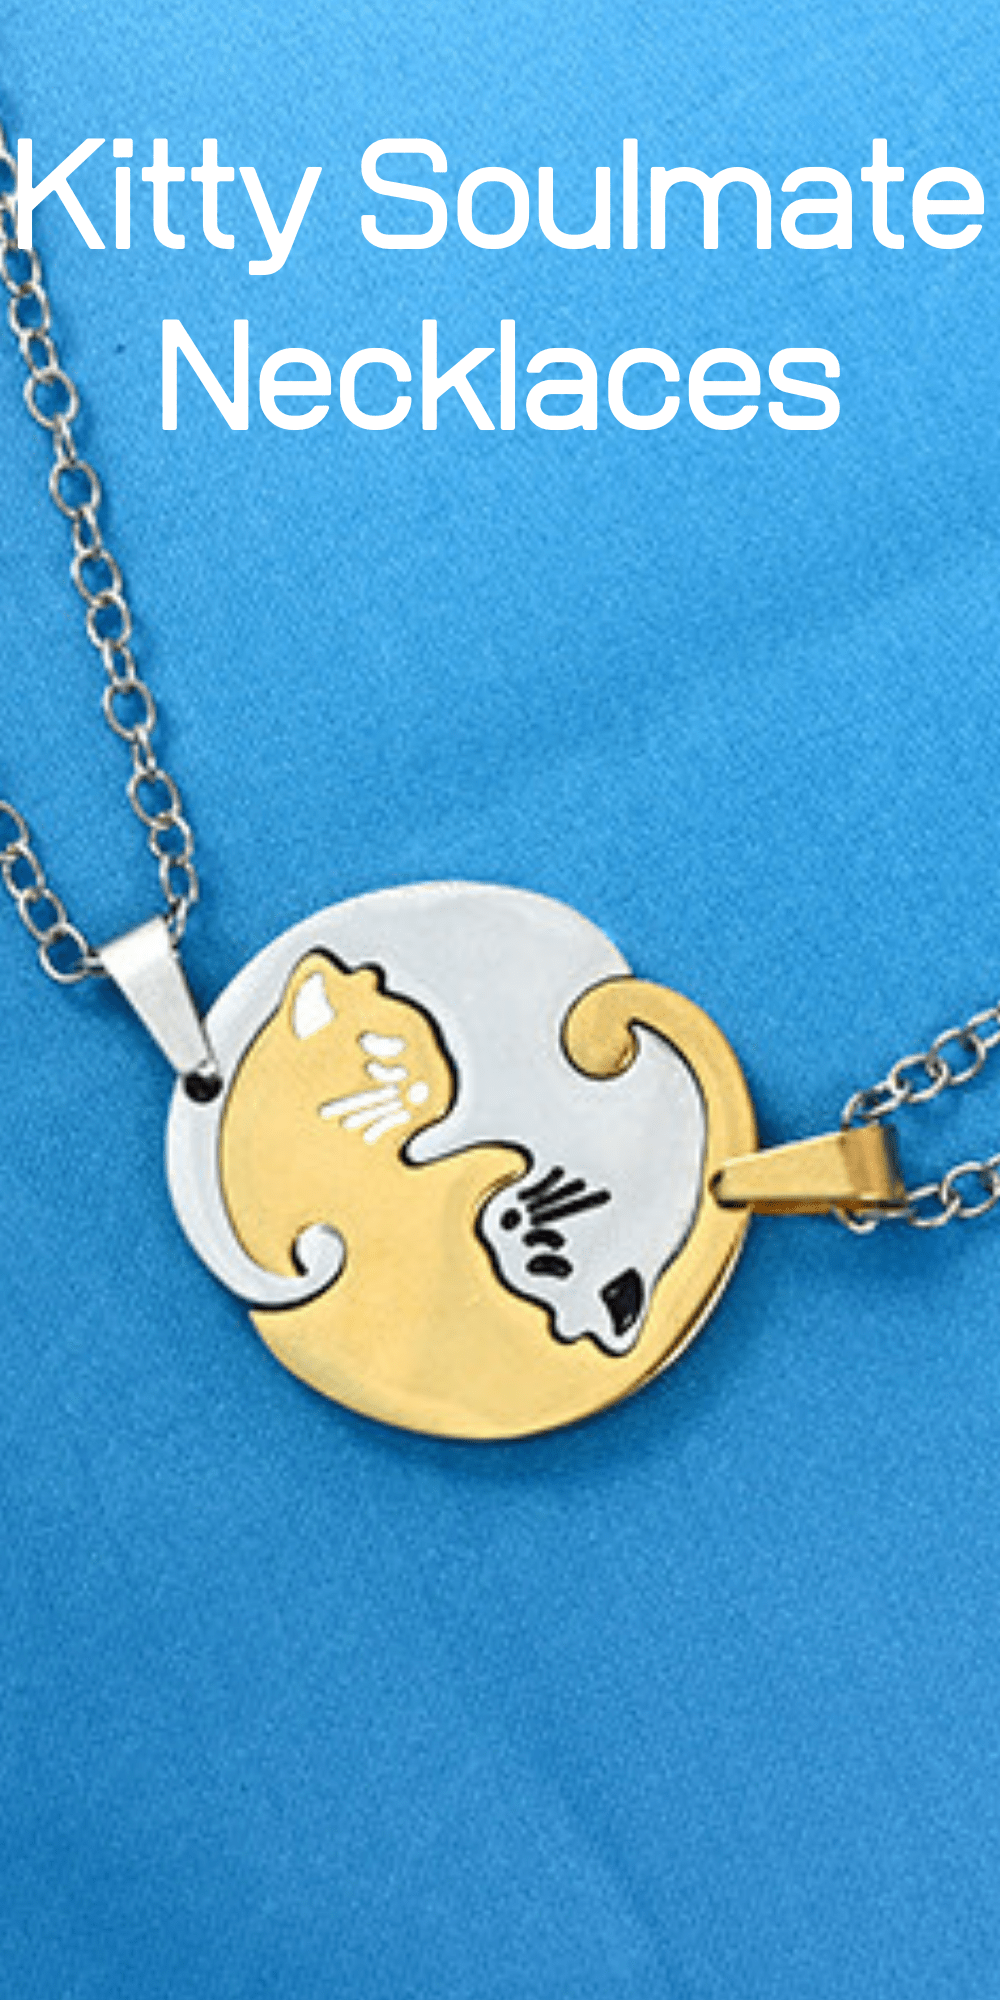 Give your girlfriend the perfect gift two embracing kitties on a necklace! Cute cat jewelry.